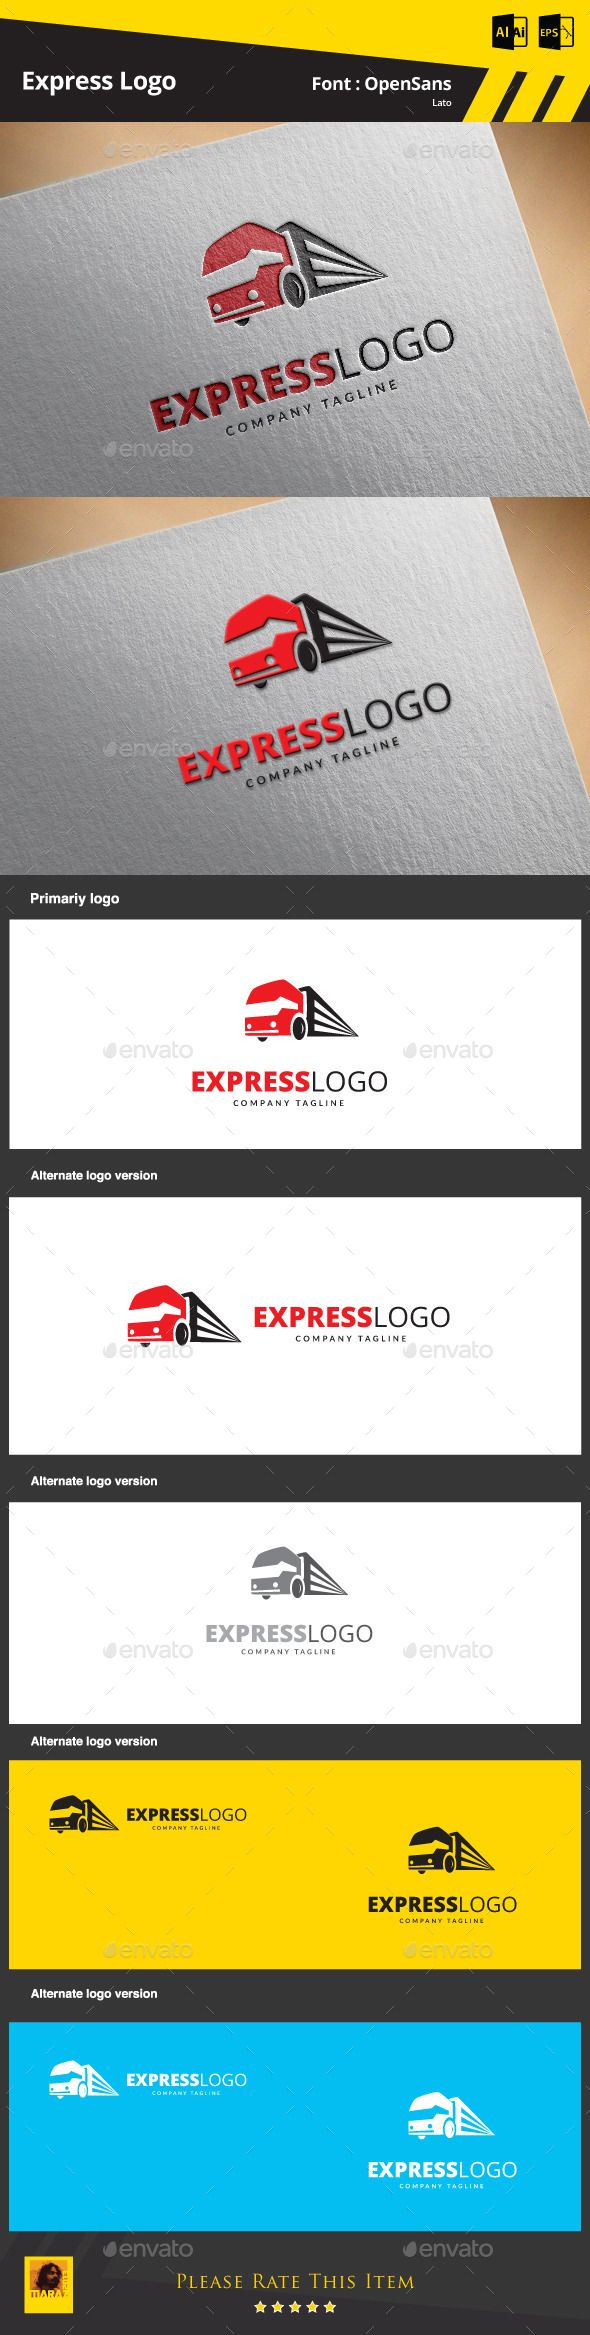 Express Logo Template Express Logo Logo Template Suitable for:  Design Studios  Photography  Web Pa #Express, #Logo, #Template